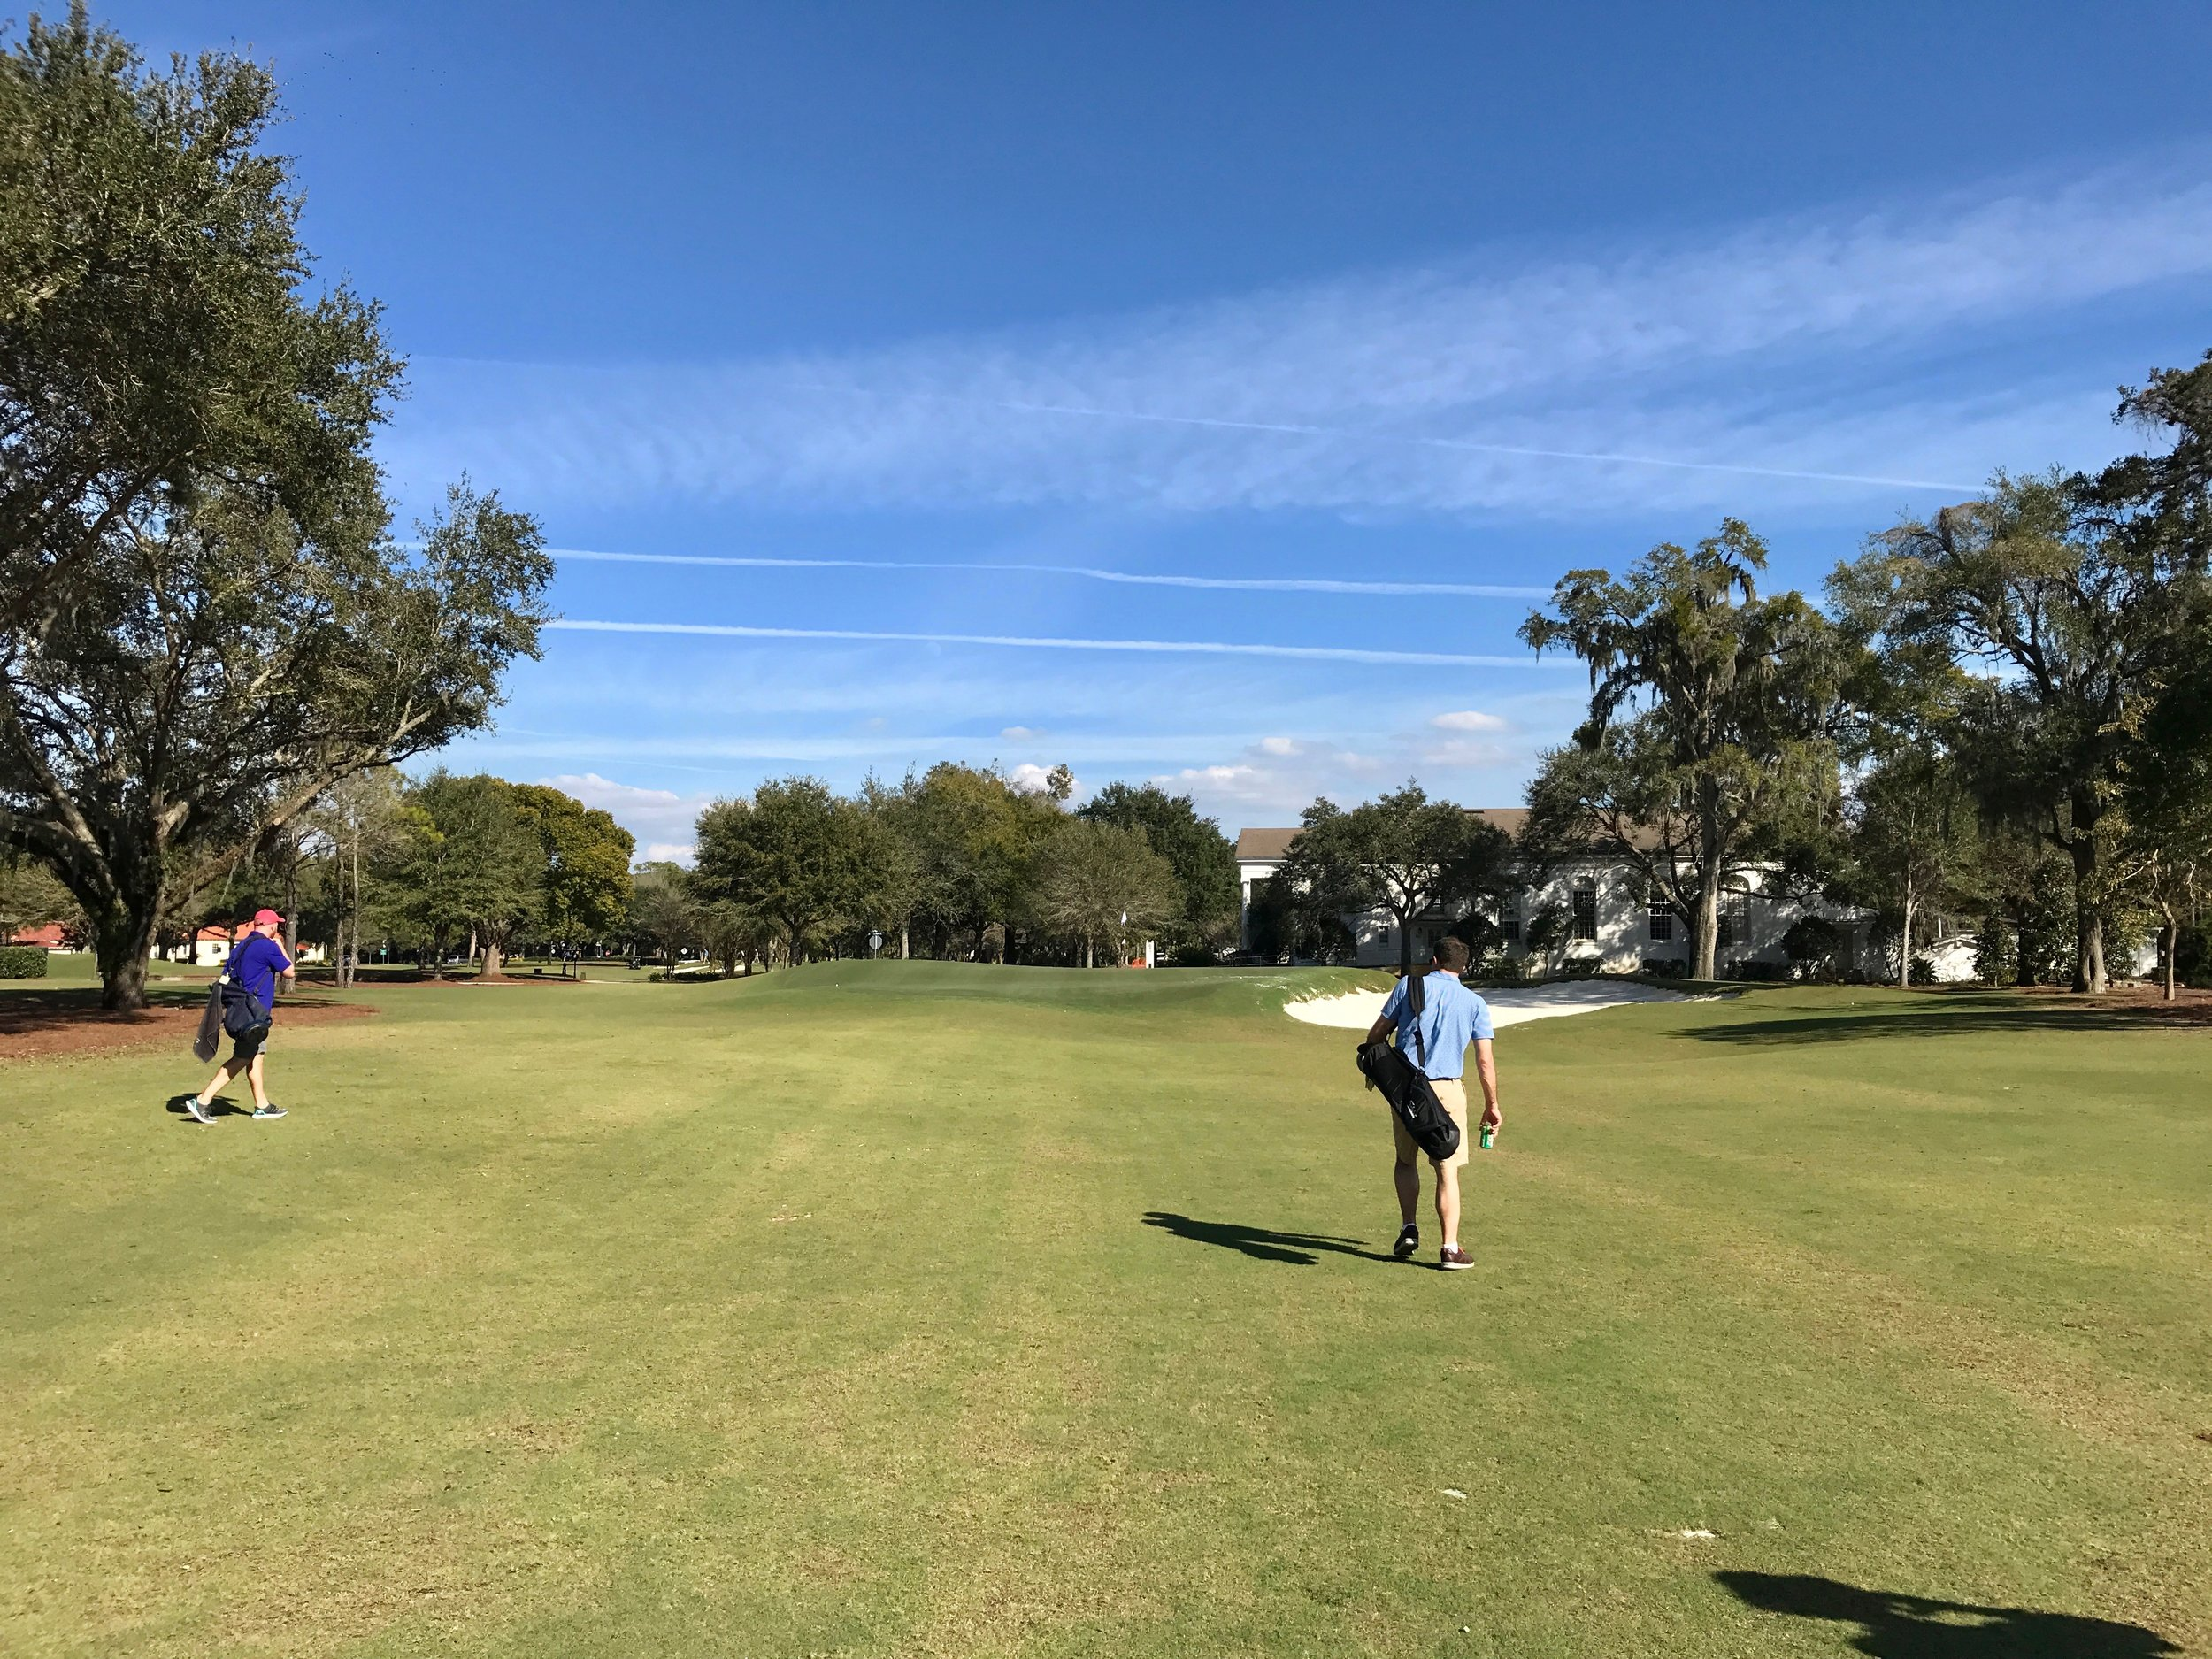 A muni with great conditions?!  Winter Park has it with wall-to-wall short bermudagrass and greens that roll smoothly at a proper speed.